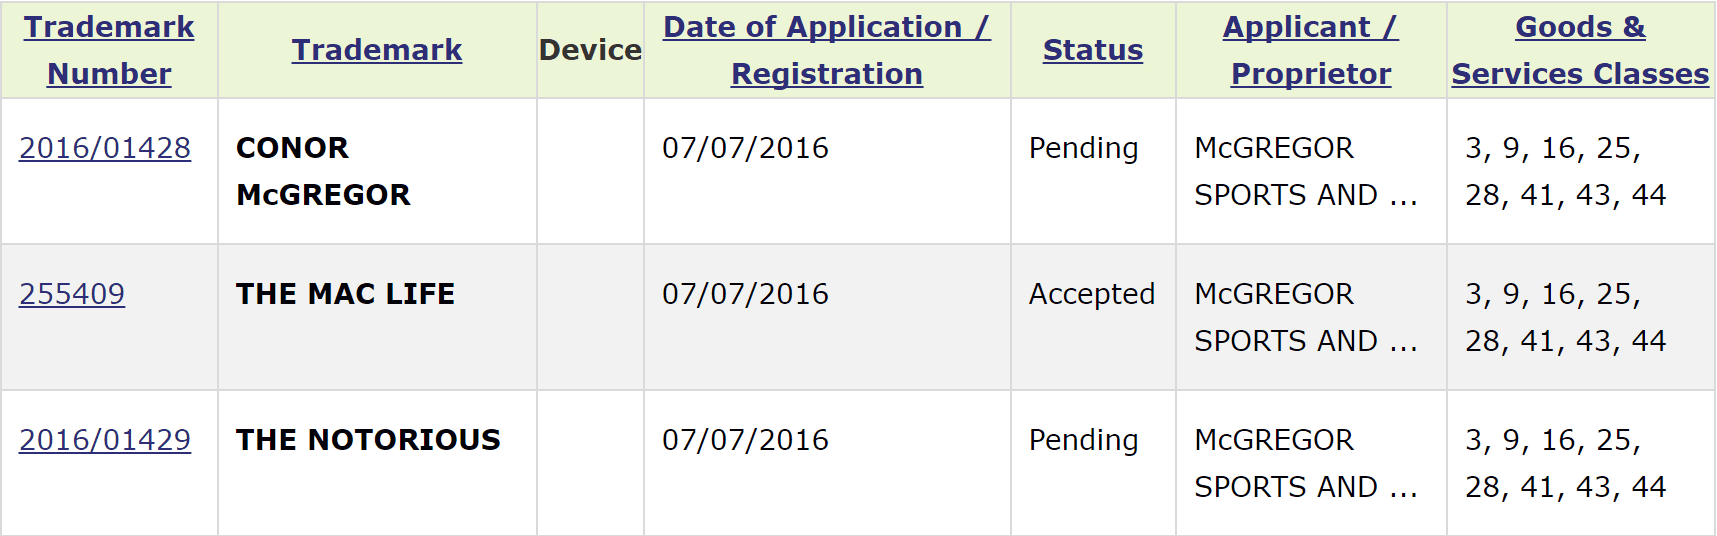 Conor McGregor Irish Trademark Applications